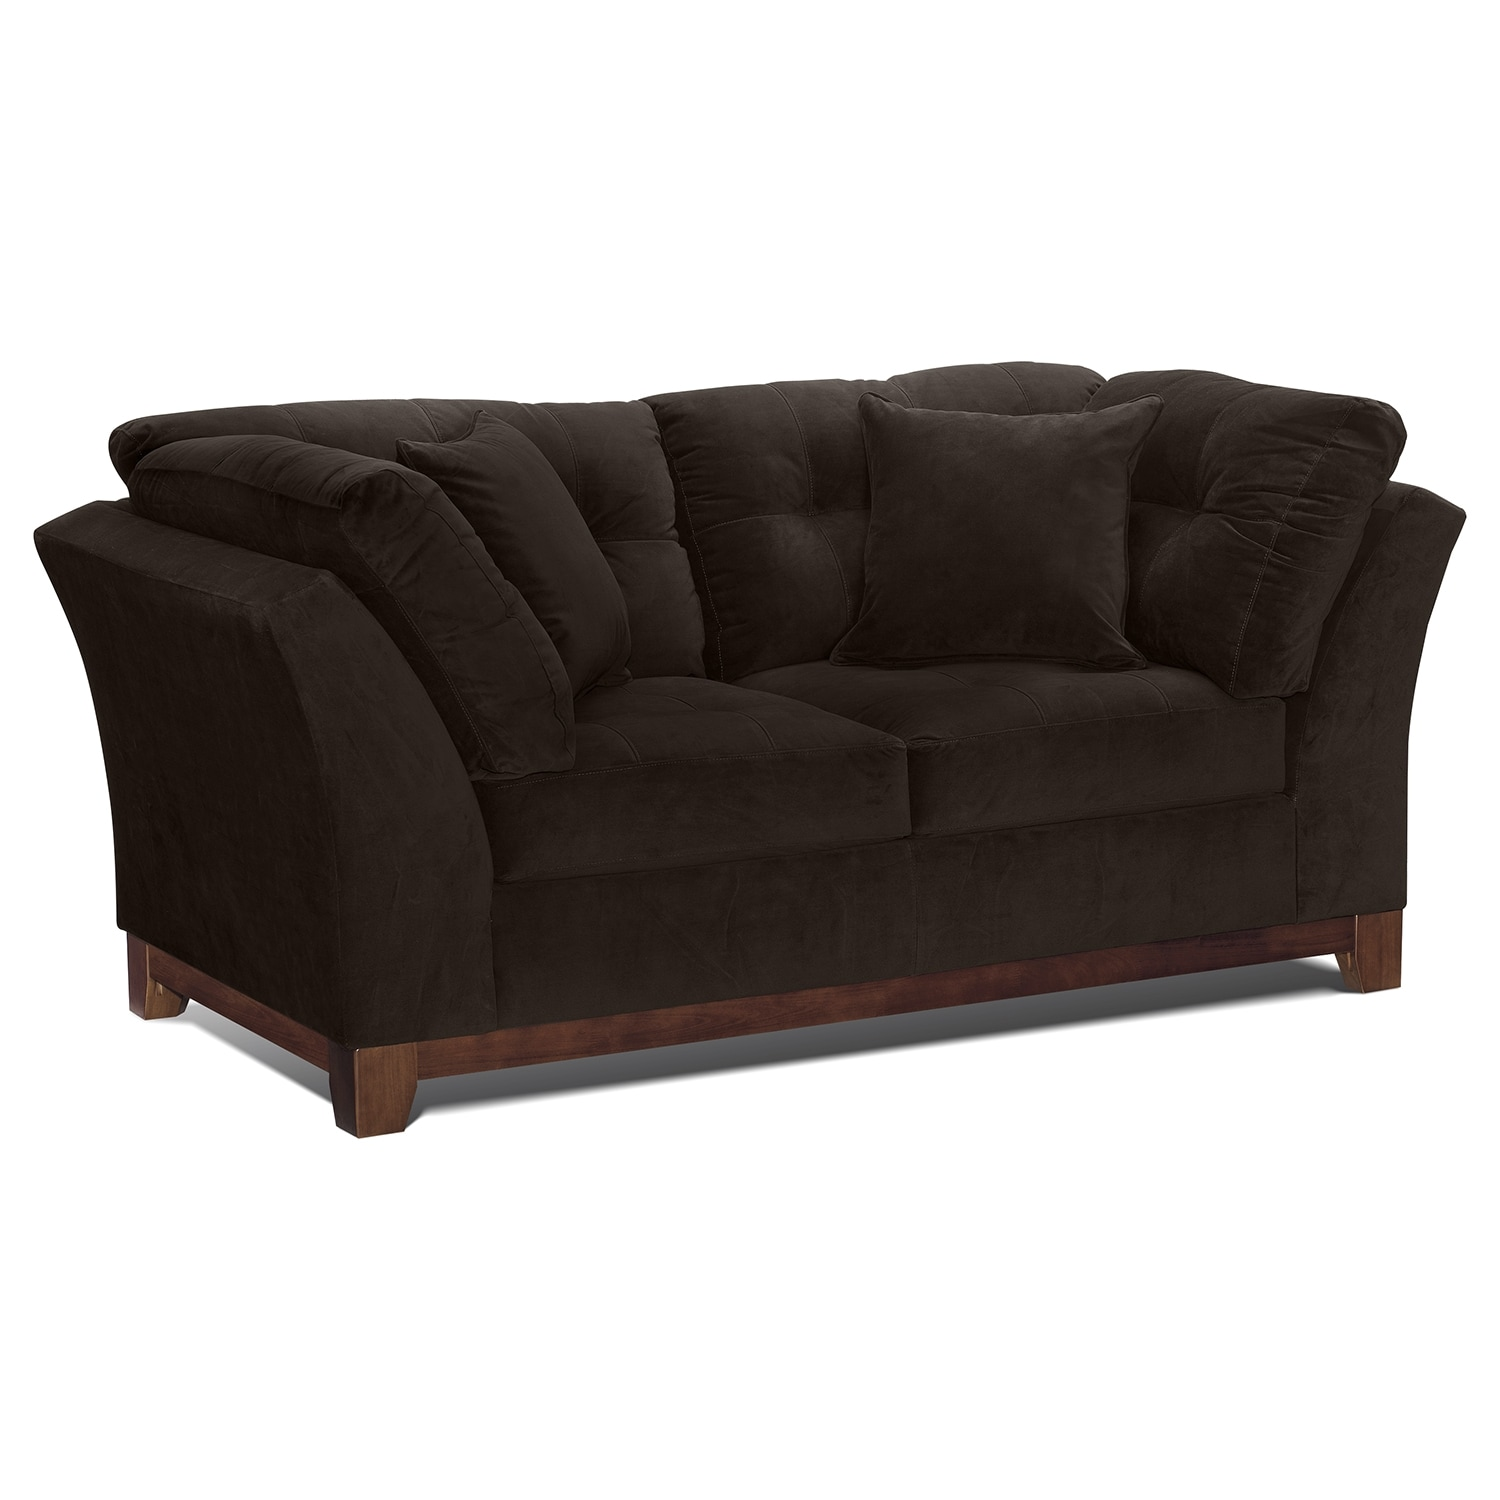 Living Room Furniture - Solace Chocolate Loveseat